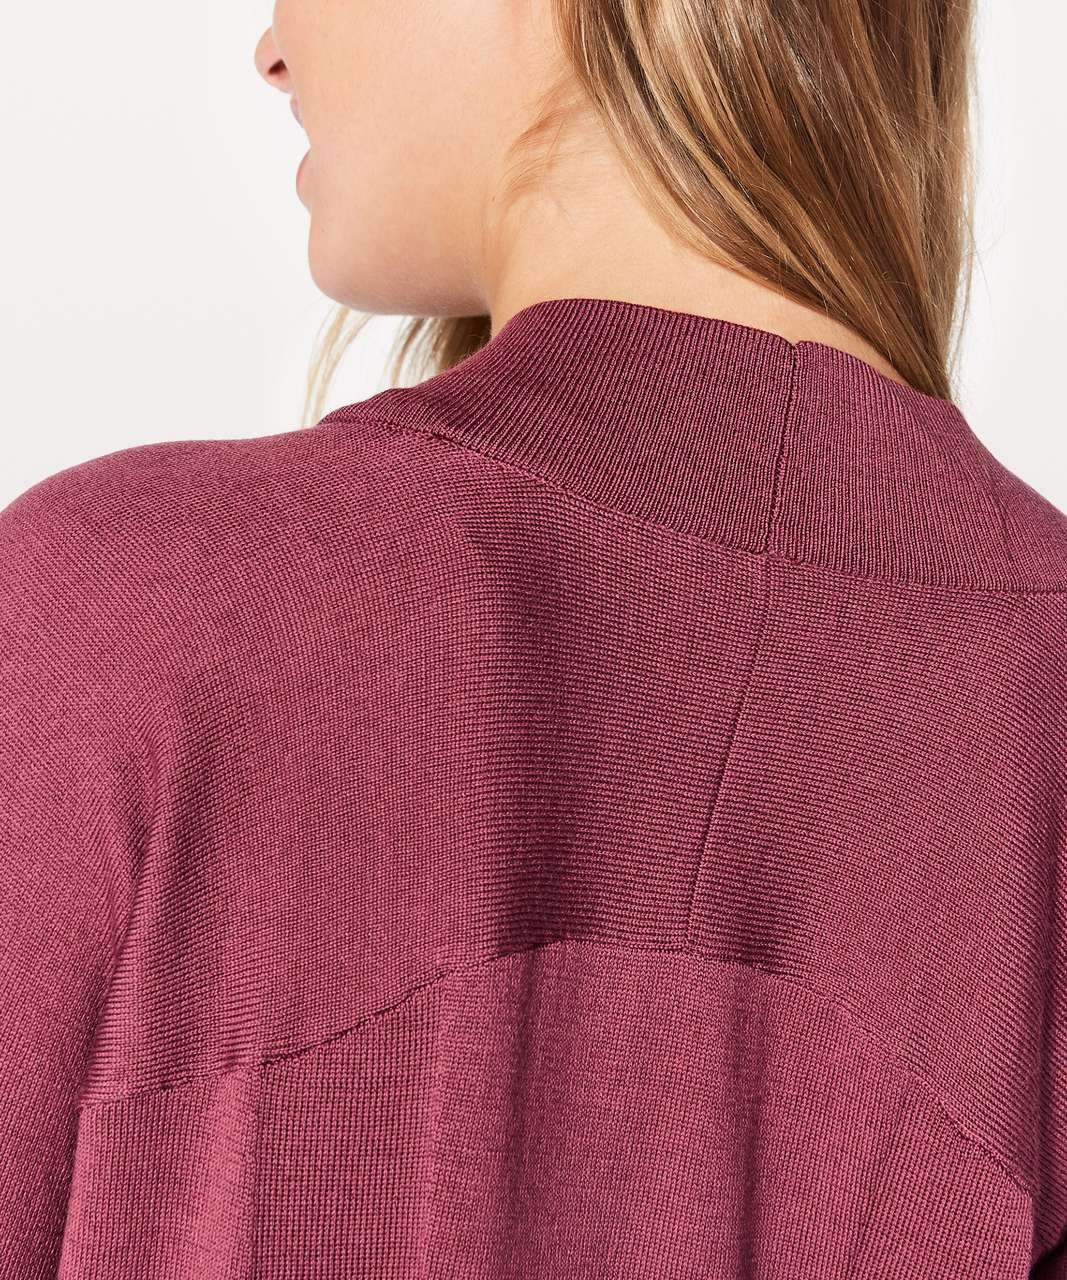 Lululemon Blissful Zen Sweater - So Merlot